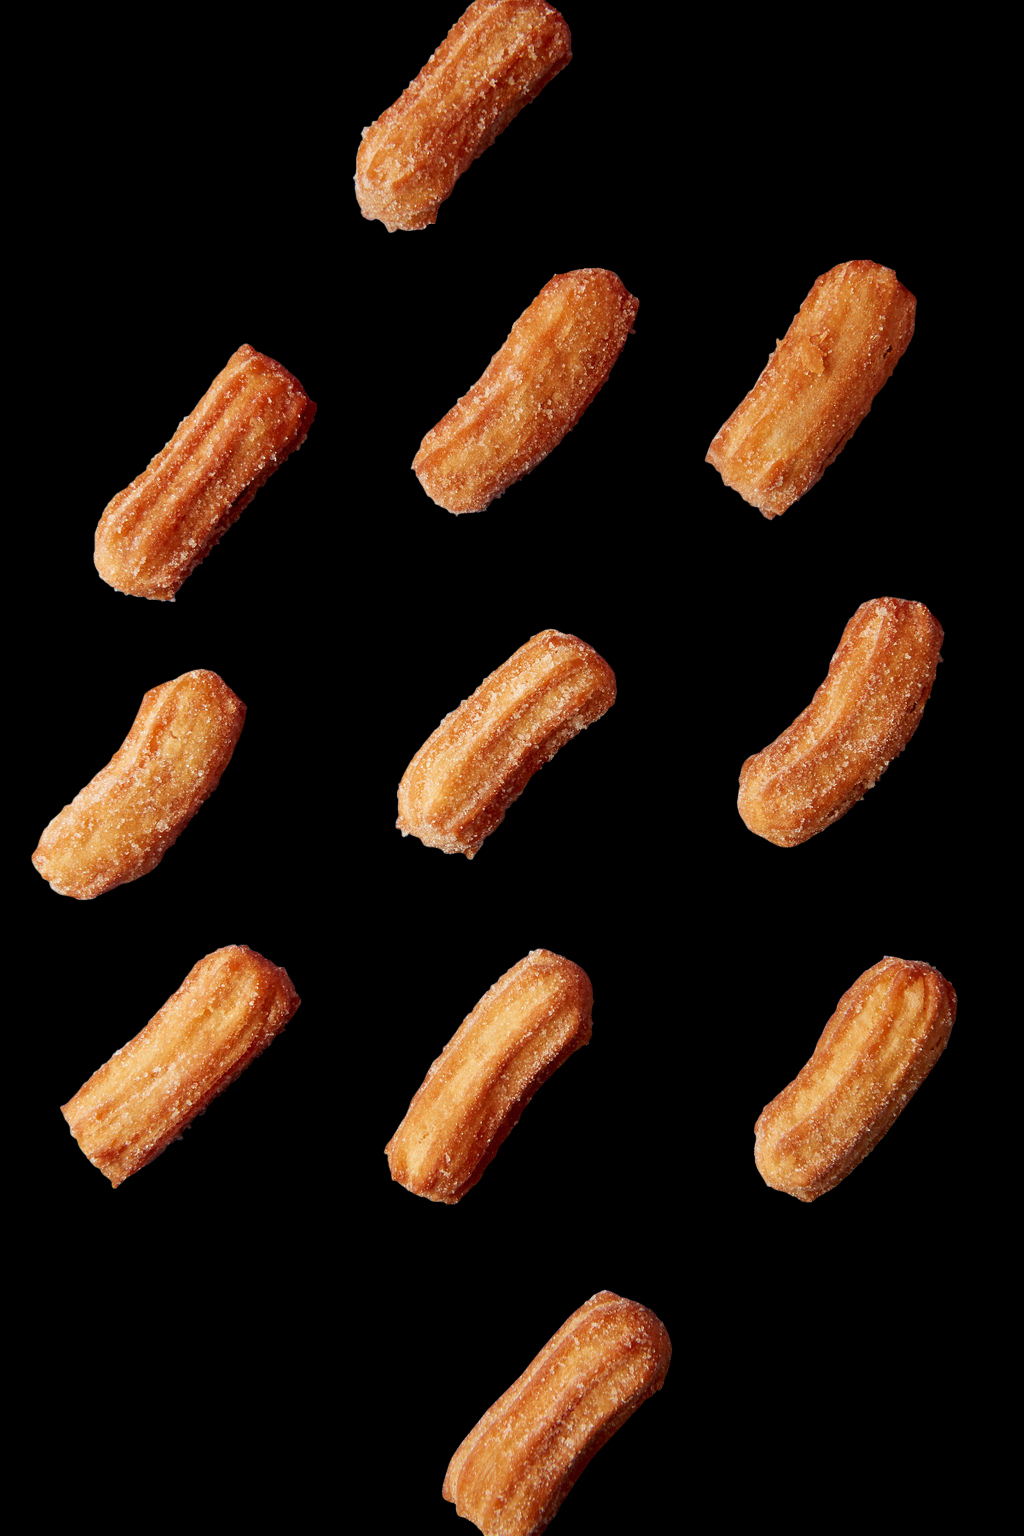 3TenChurrobar_BlackBackground_AN_2799.jpg